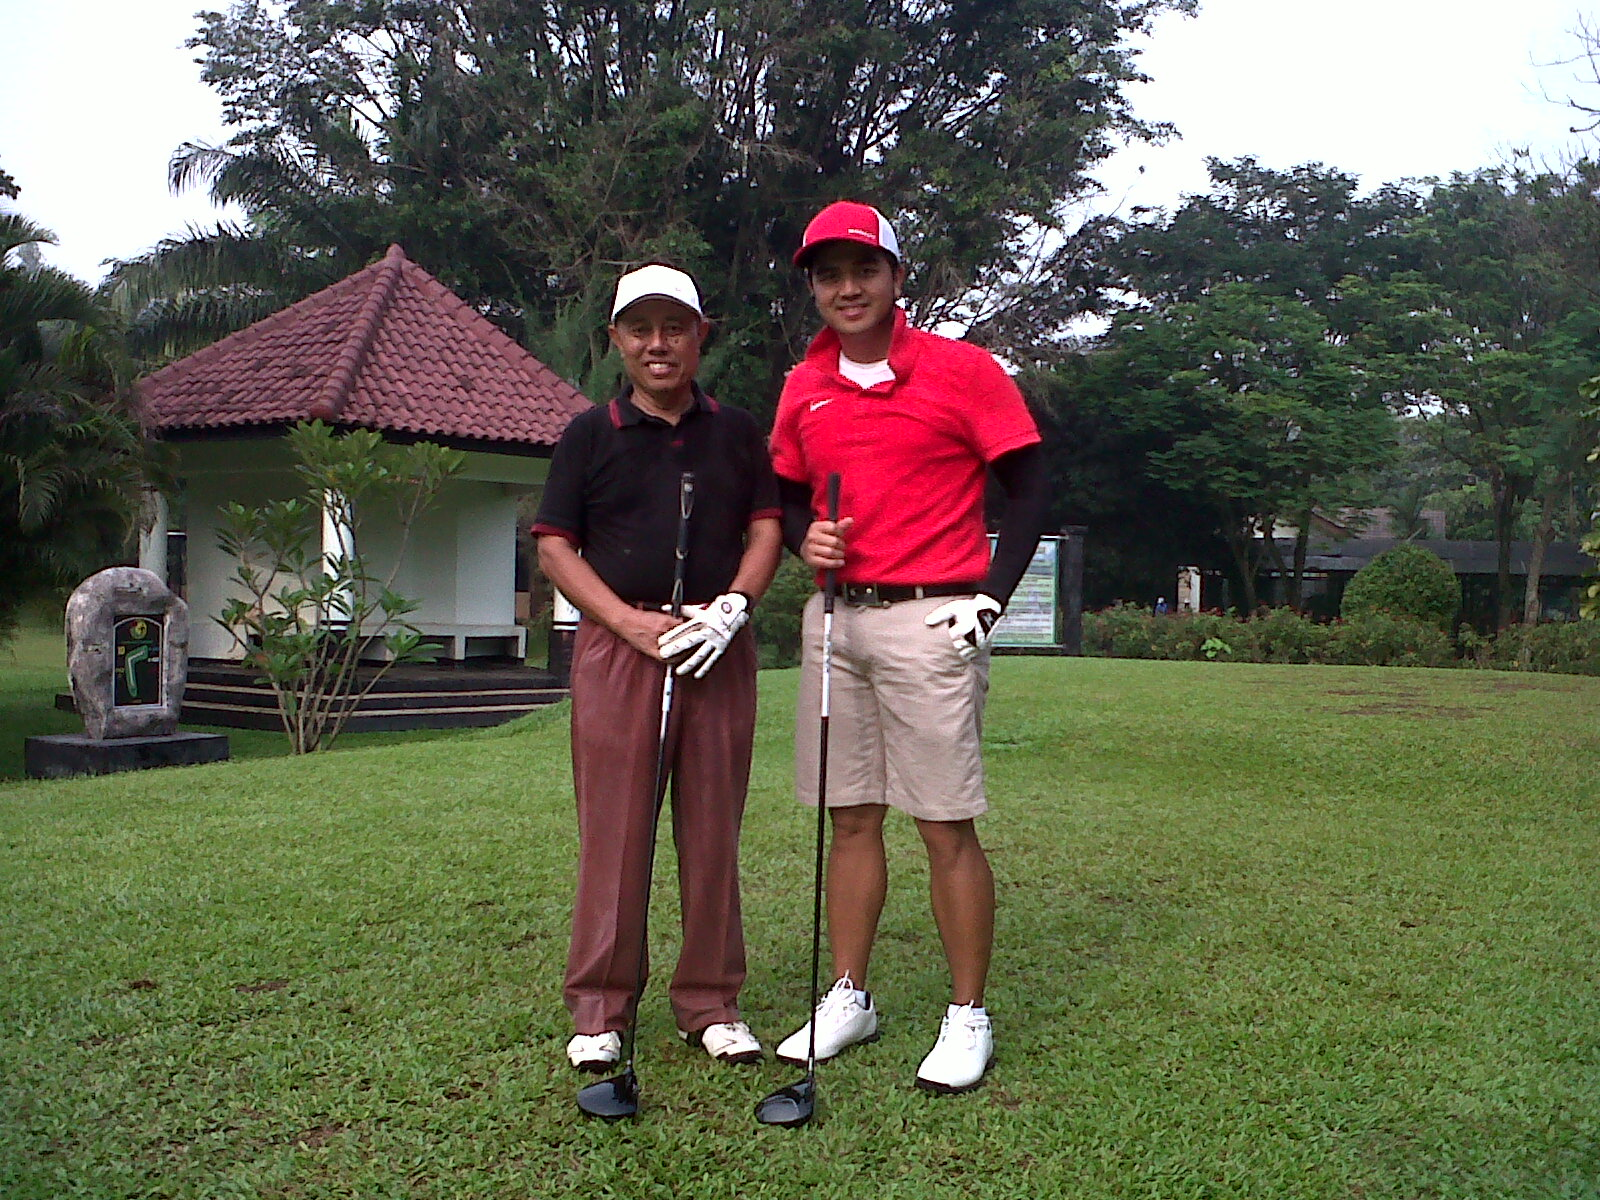 PRAKTEK MAIN GOLF